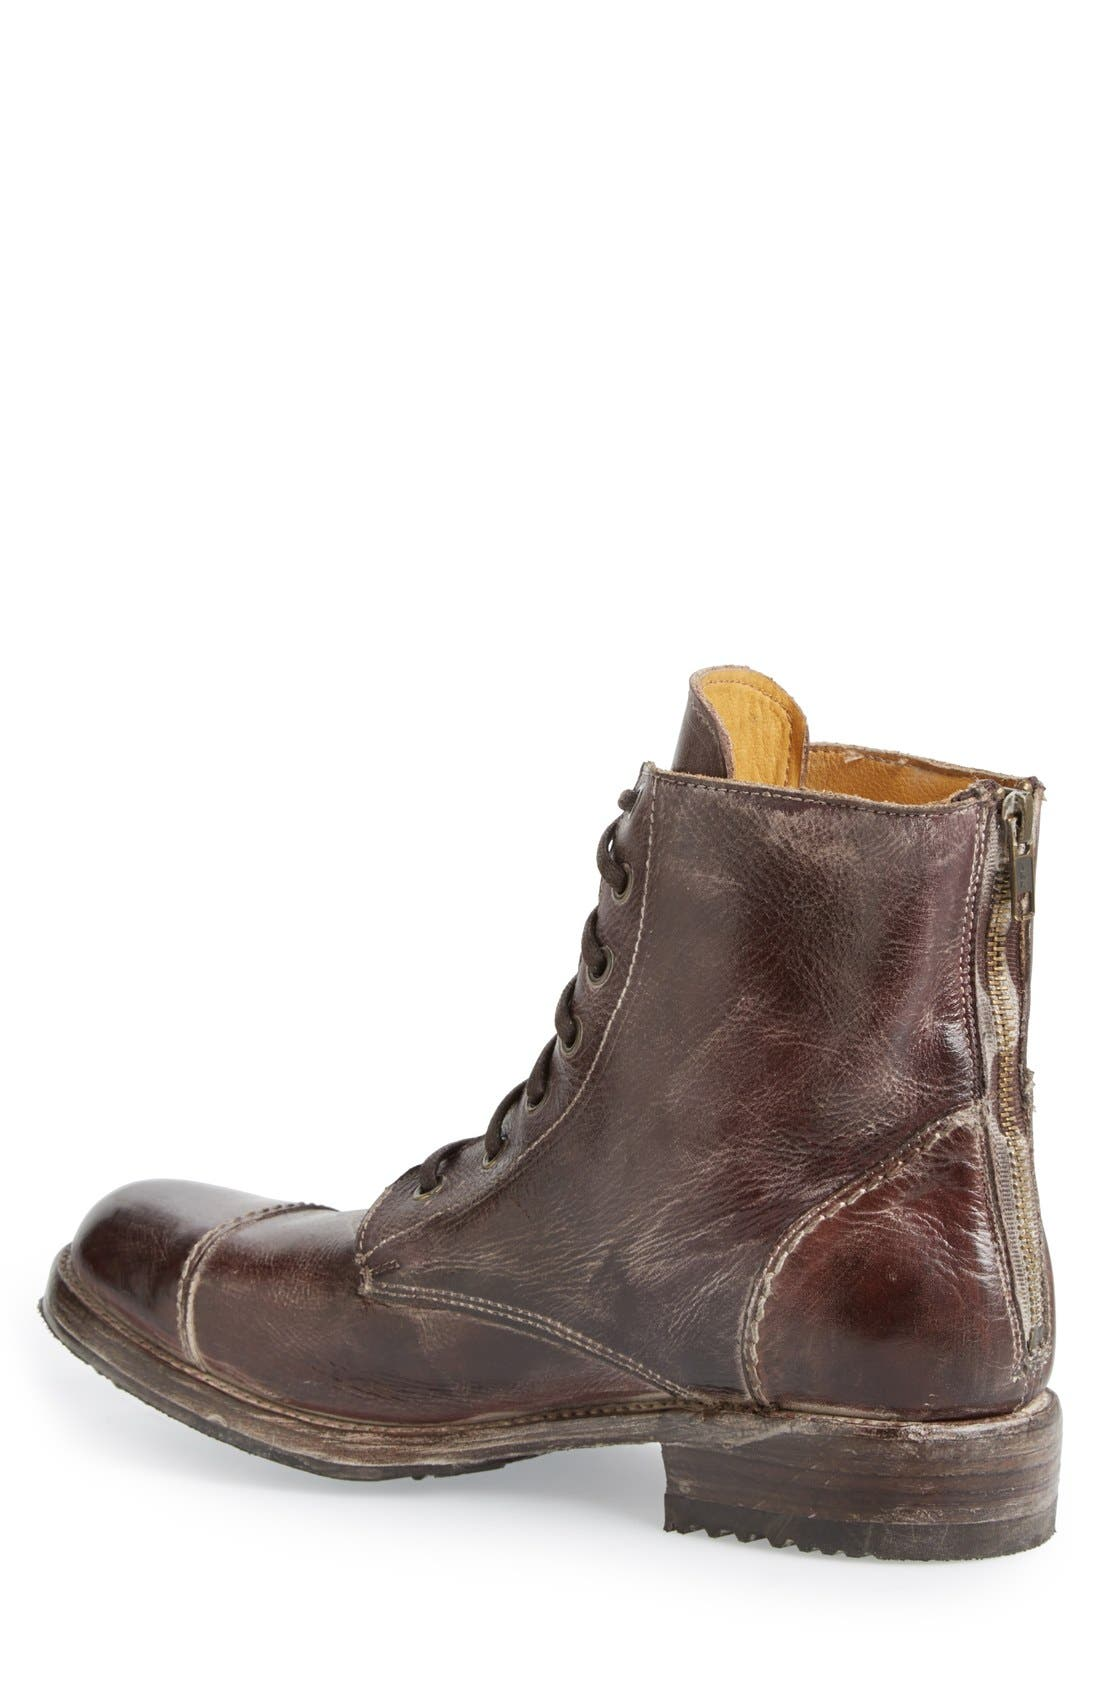 Alternate Image 2  - Bed Stu 'Protégé' Cap Toe Boot (Men)